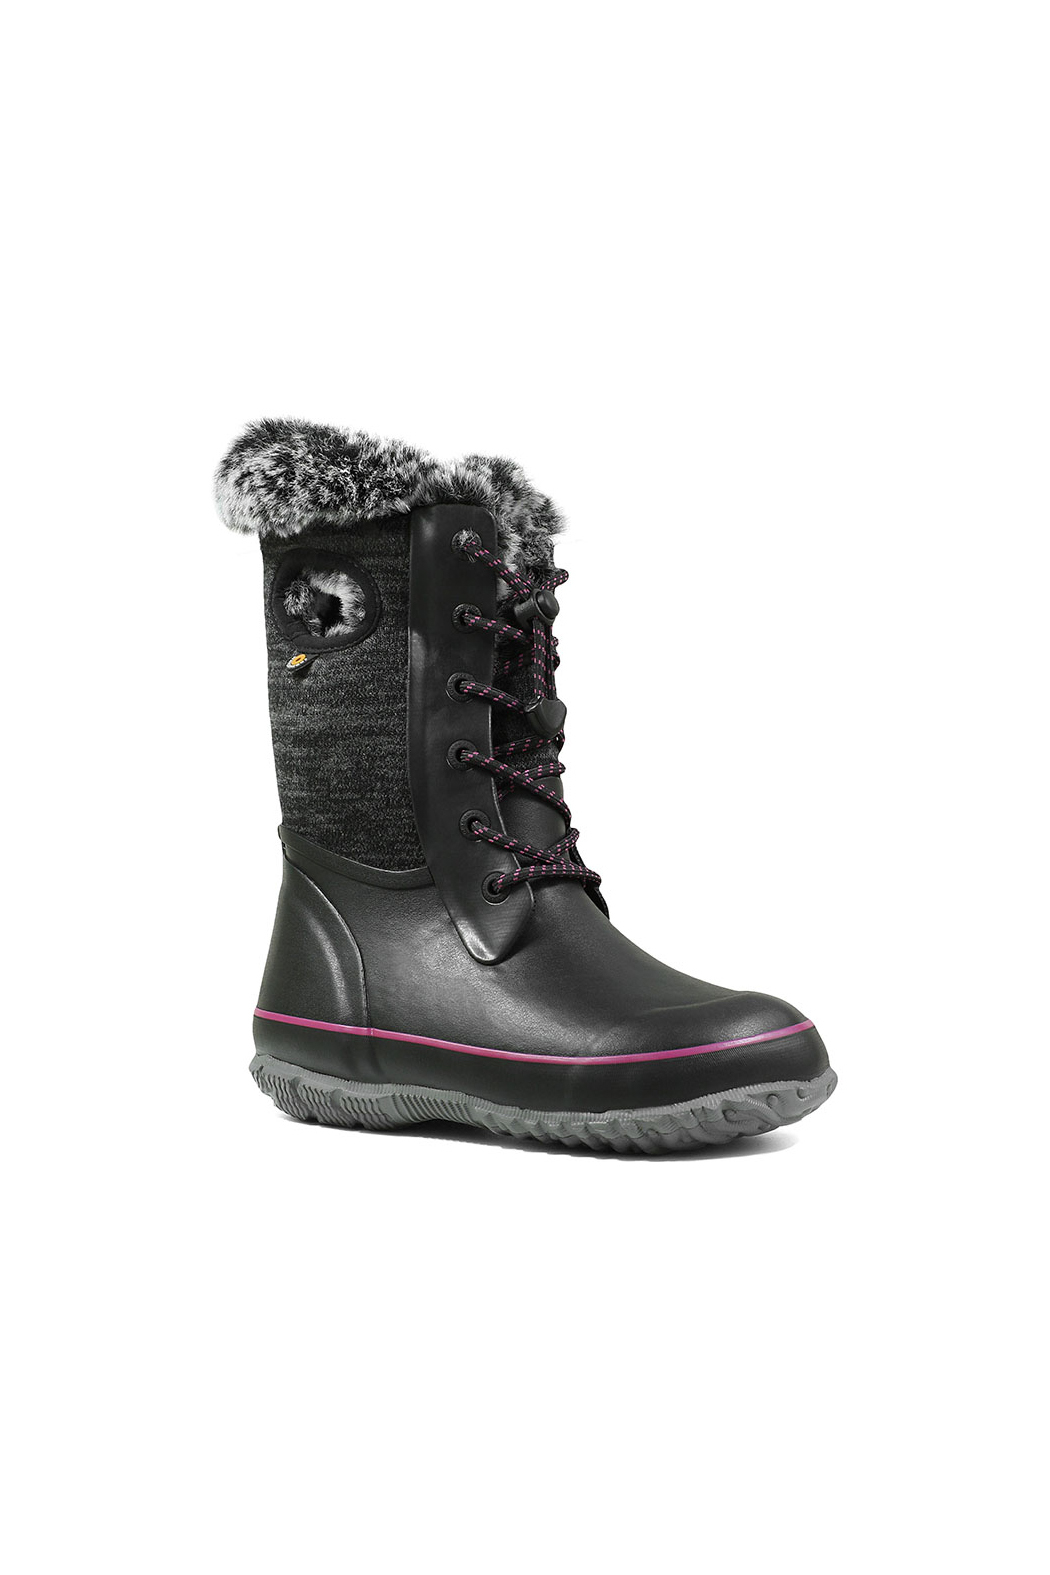 BOGS Arcata Knit Kids Waterproof Boots - Front Full Image